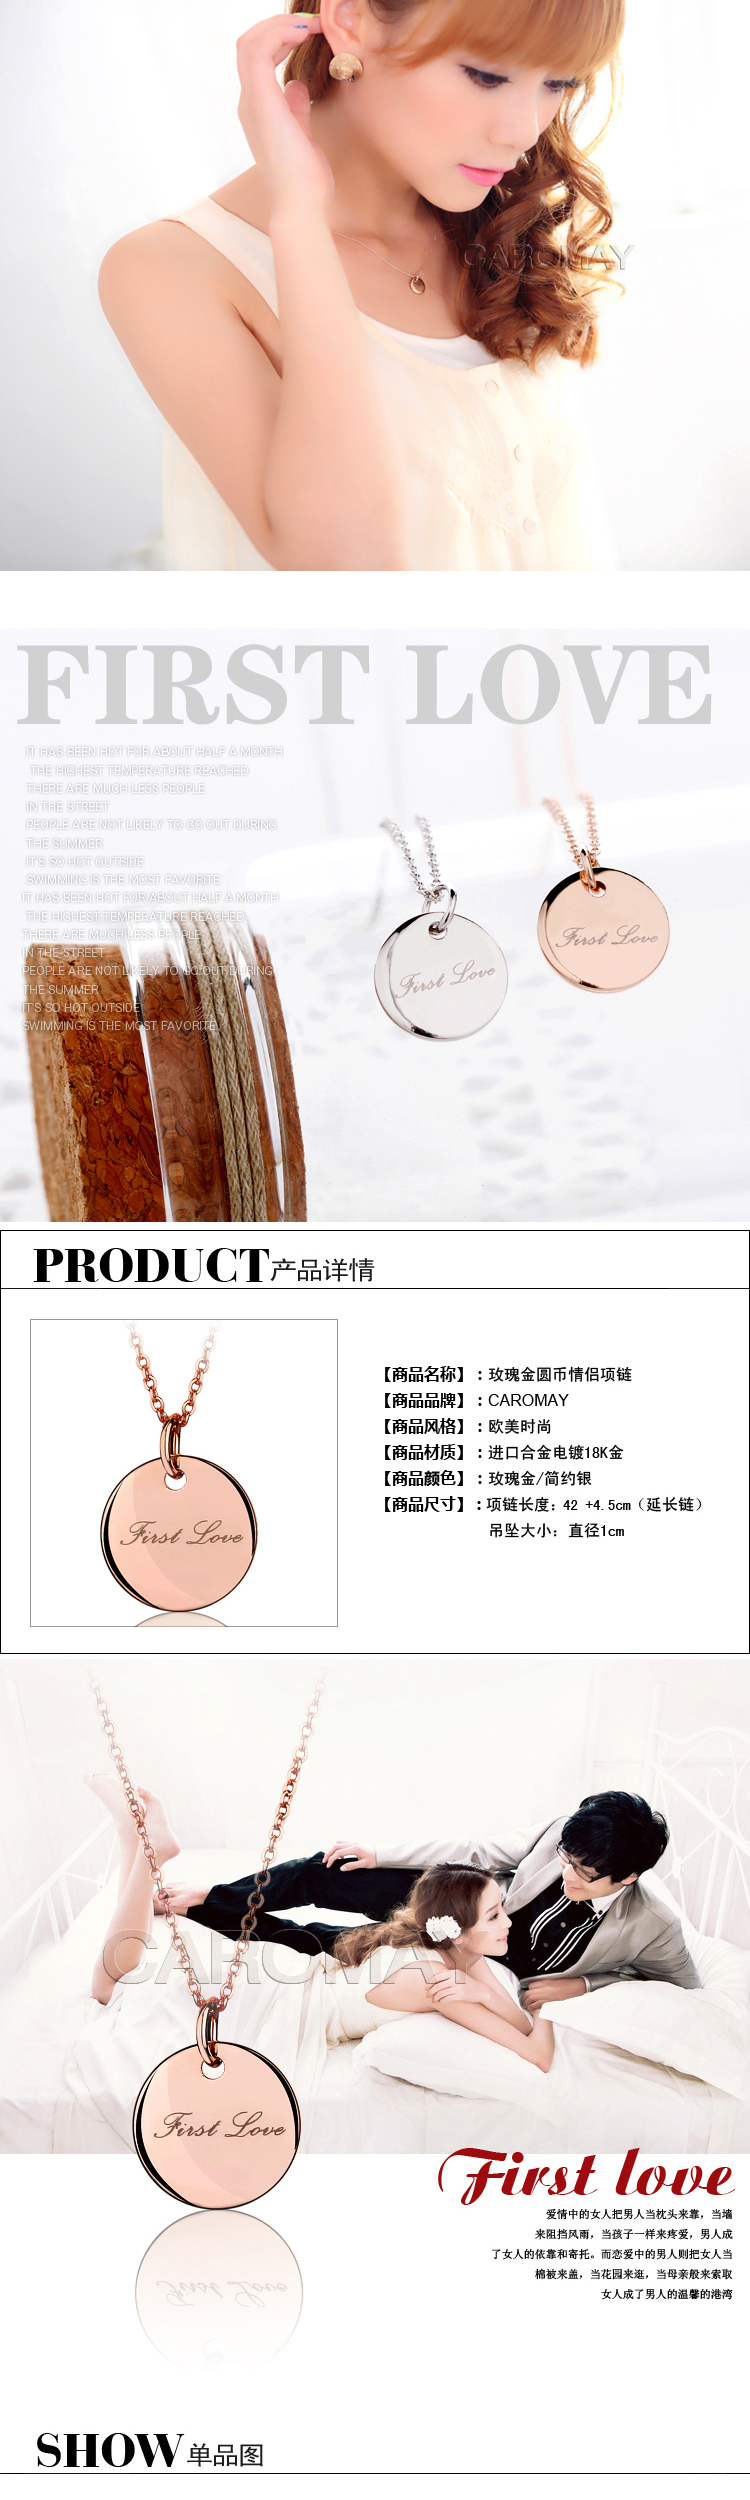 Caromay Carlo U.S. jewelry First Love first love rose gold circle necklace female couples holiday gift clavicle chain